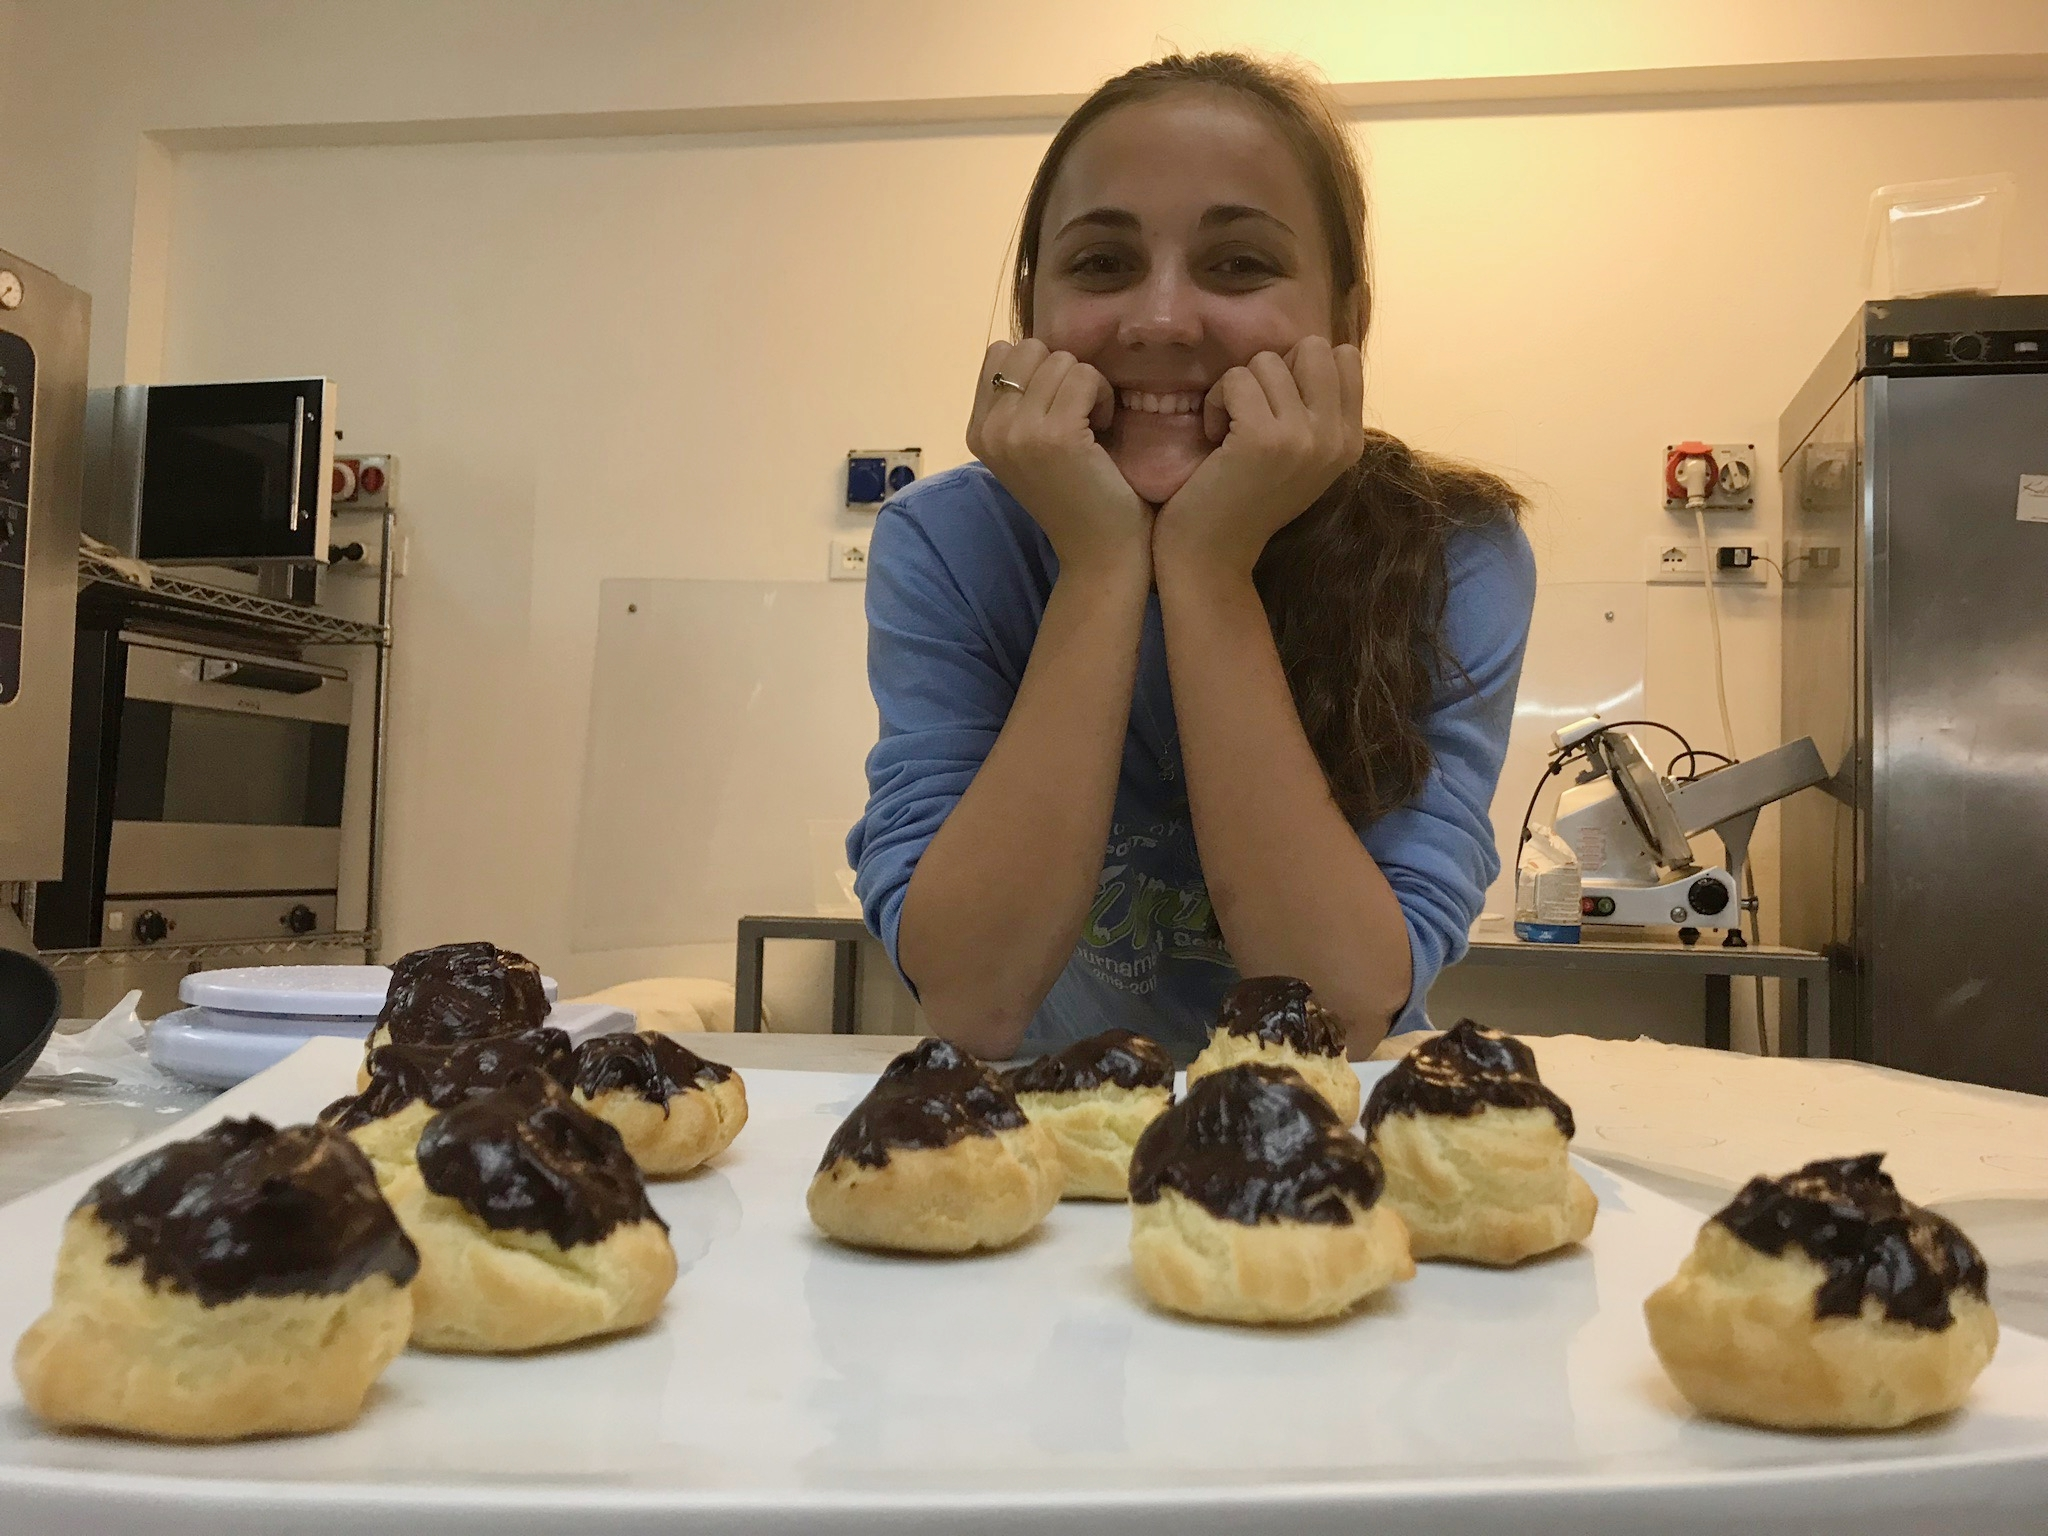 B and her homemade cream puffs